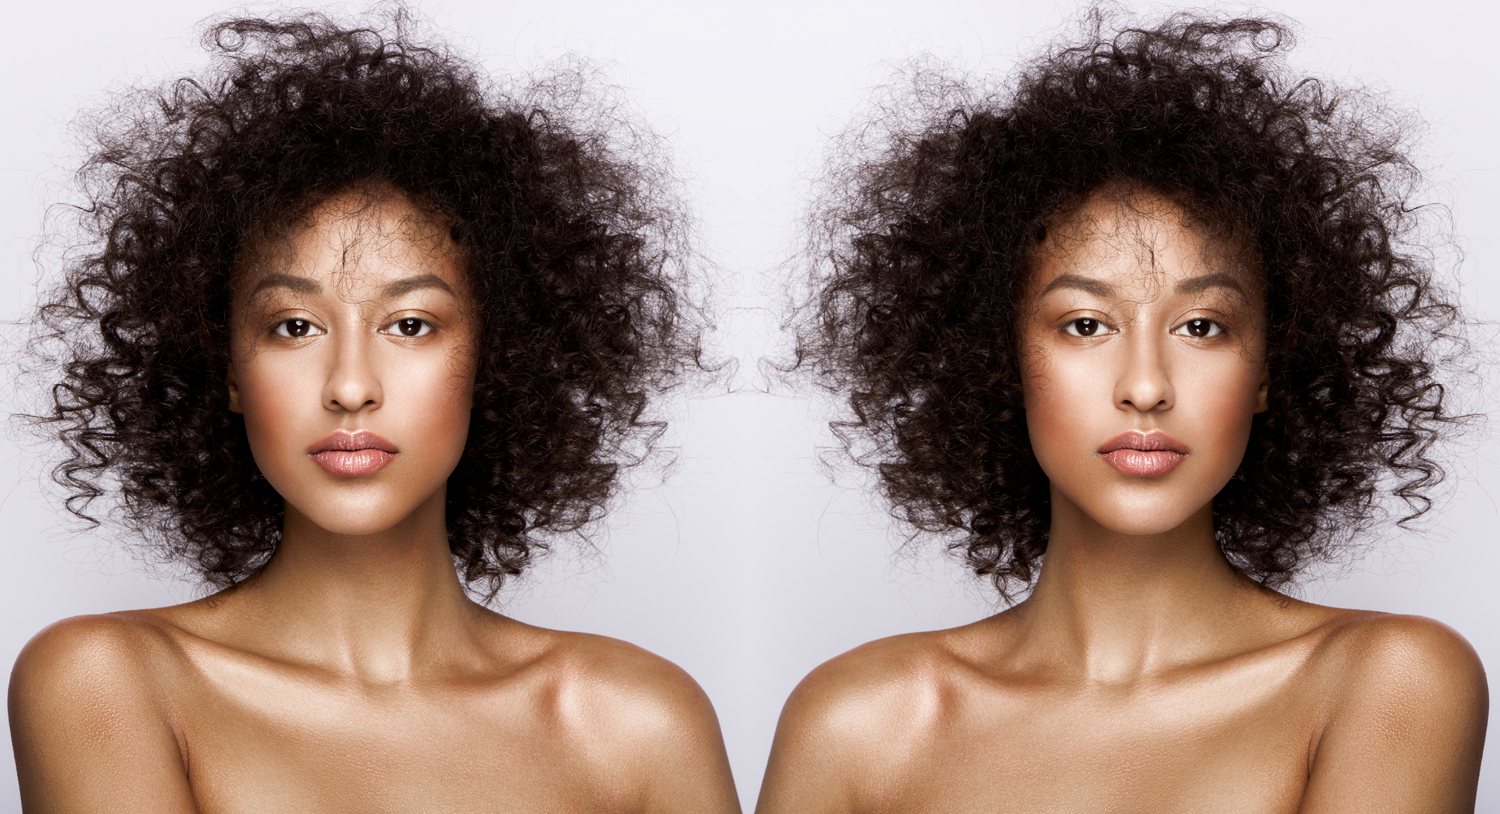 A full faced portrait and its flipped mirror image